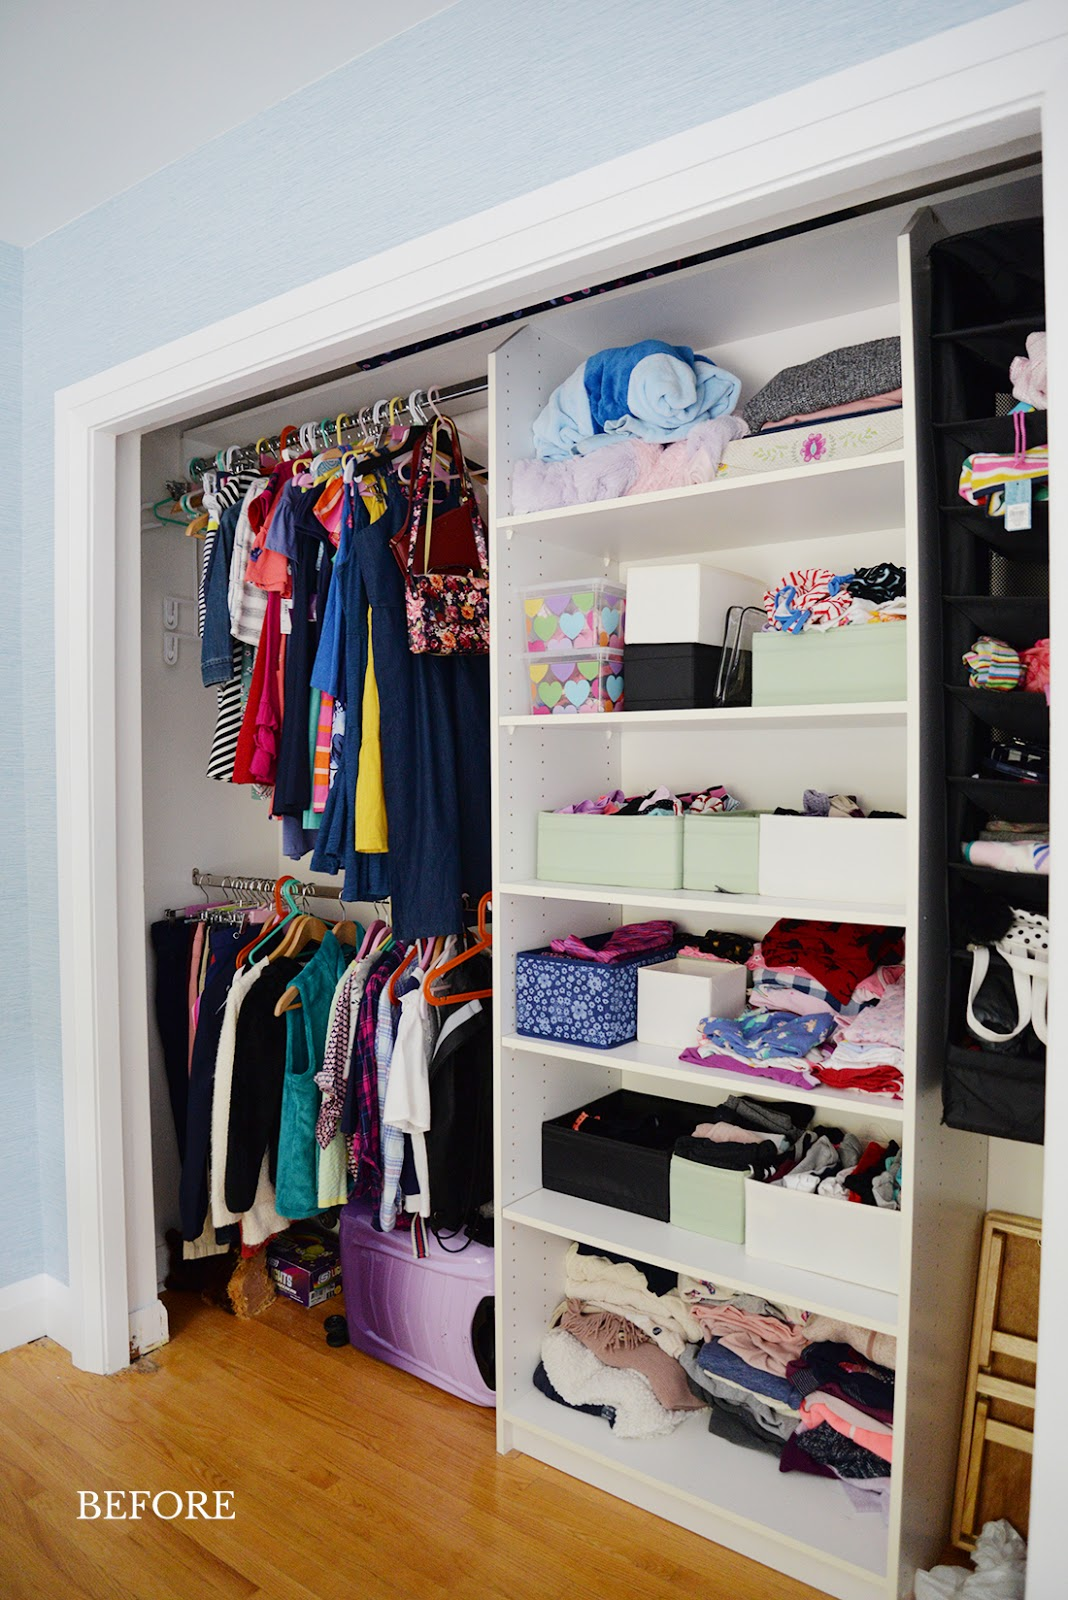 Keep your kid's clothes organized with the right closet system. We've used the IKEA PAX system to create our own built in DIY kids closet. Here's tips for kids closet organization, organization ideas for girls, and how to maximize storage in a small closet.